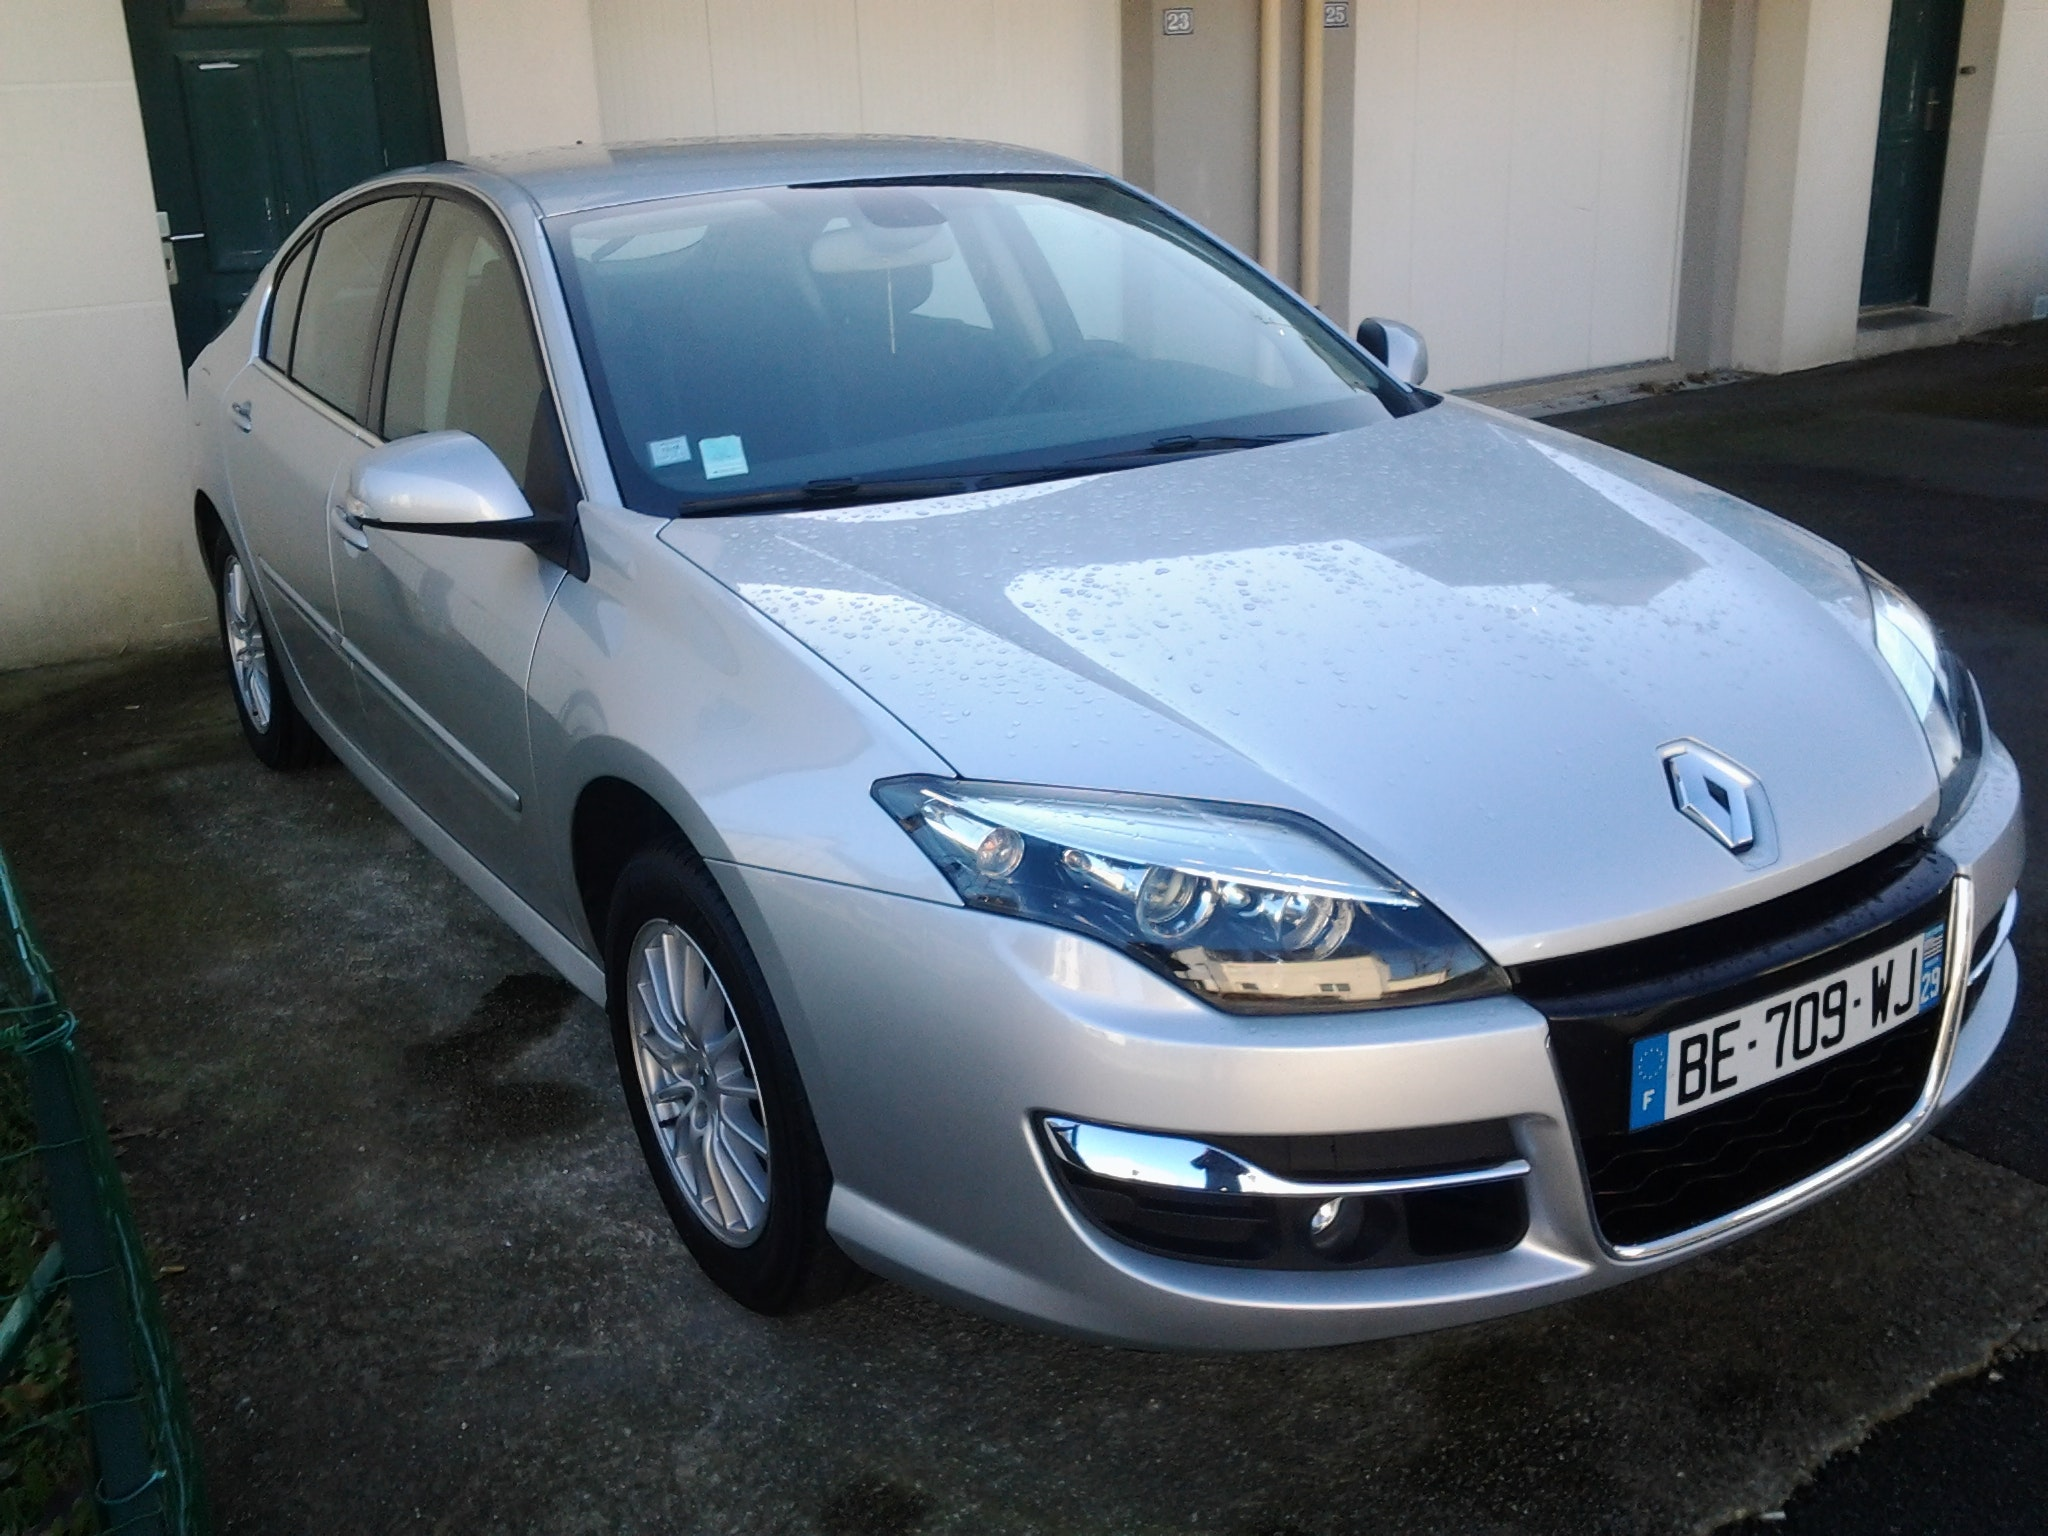 Renault laguna3 black edition 140cc, 2010, Essence